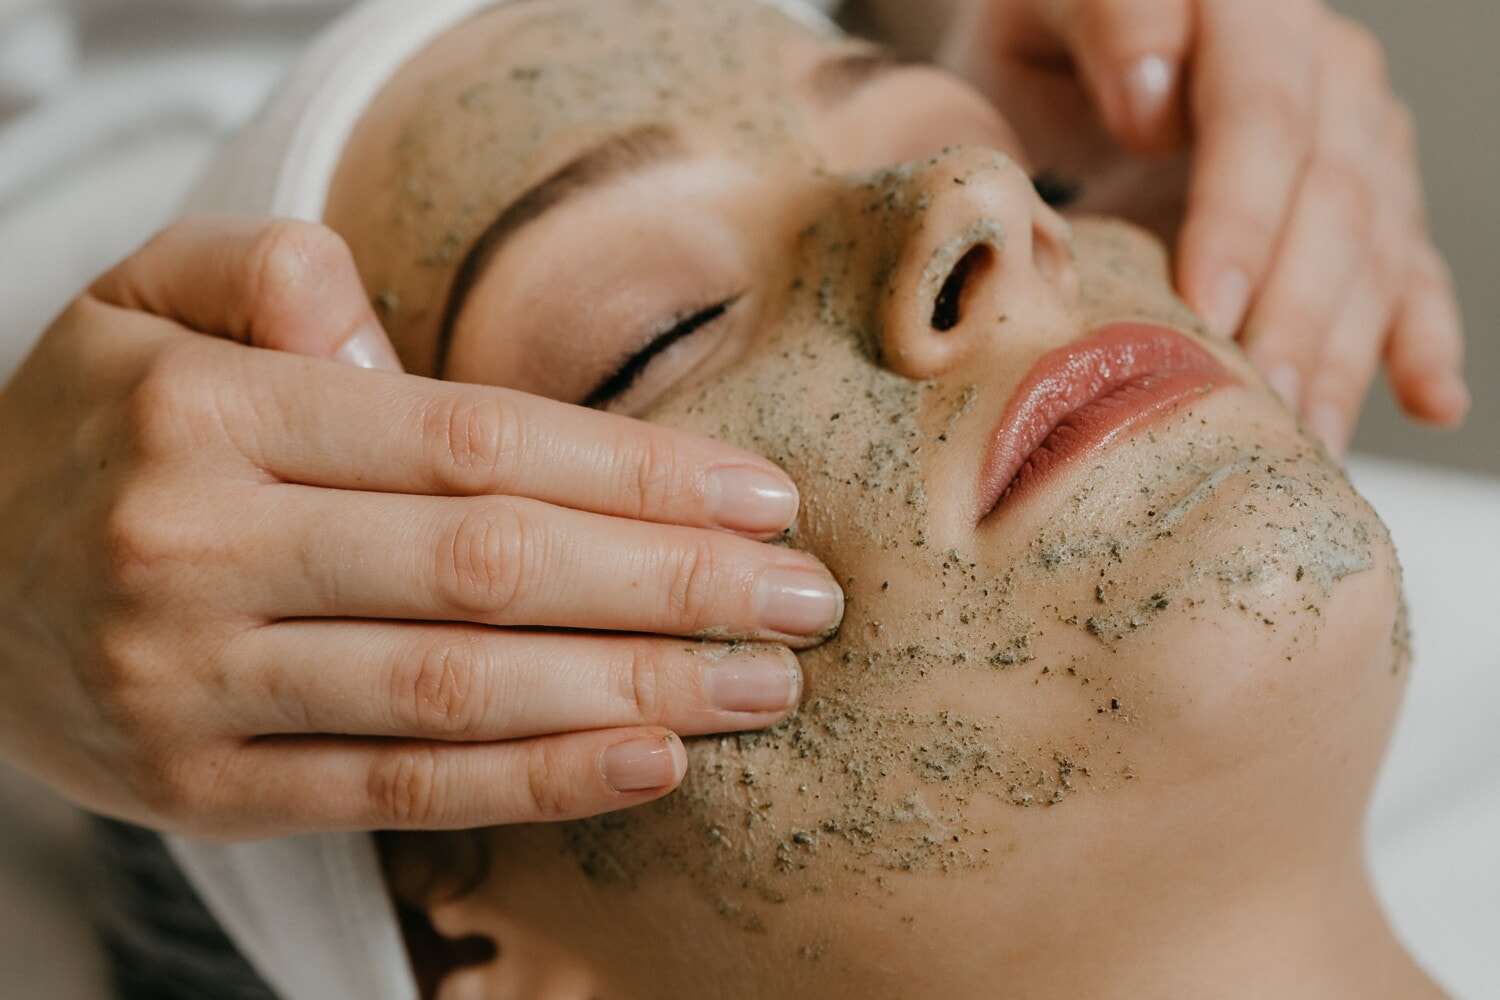 treatment, close-up, massage, wellness, face, spa center, woman, skin, relaxation, touch